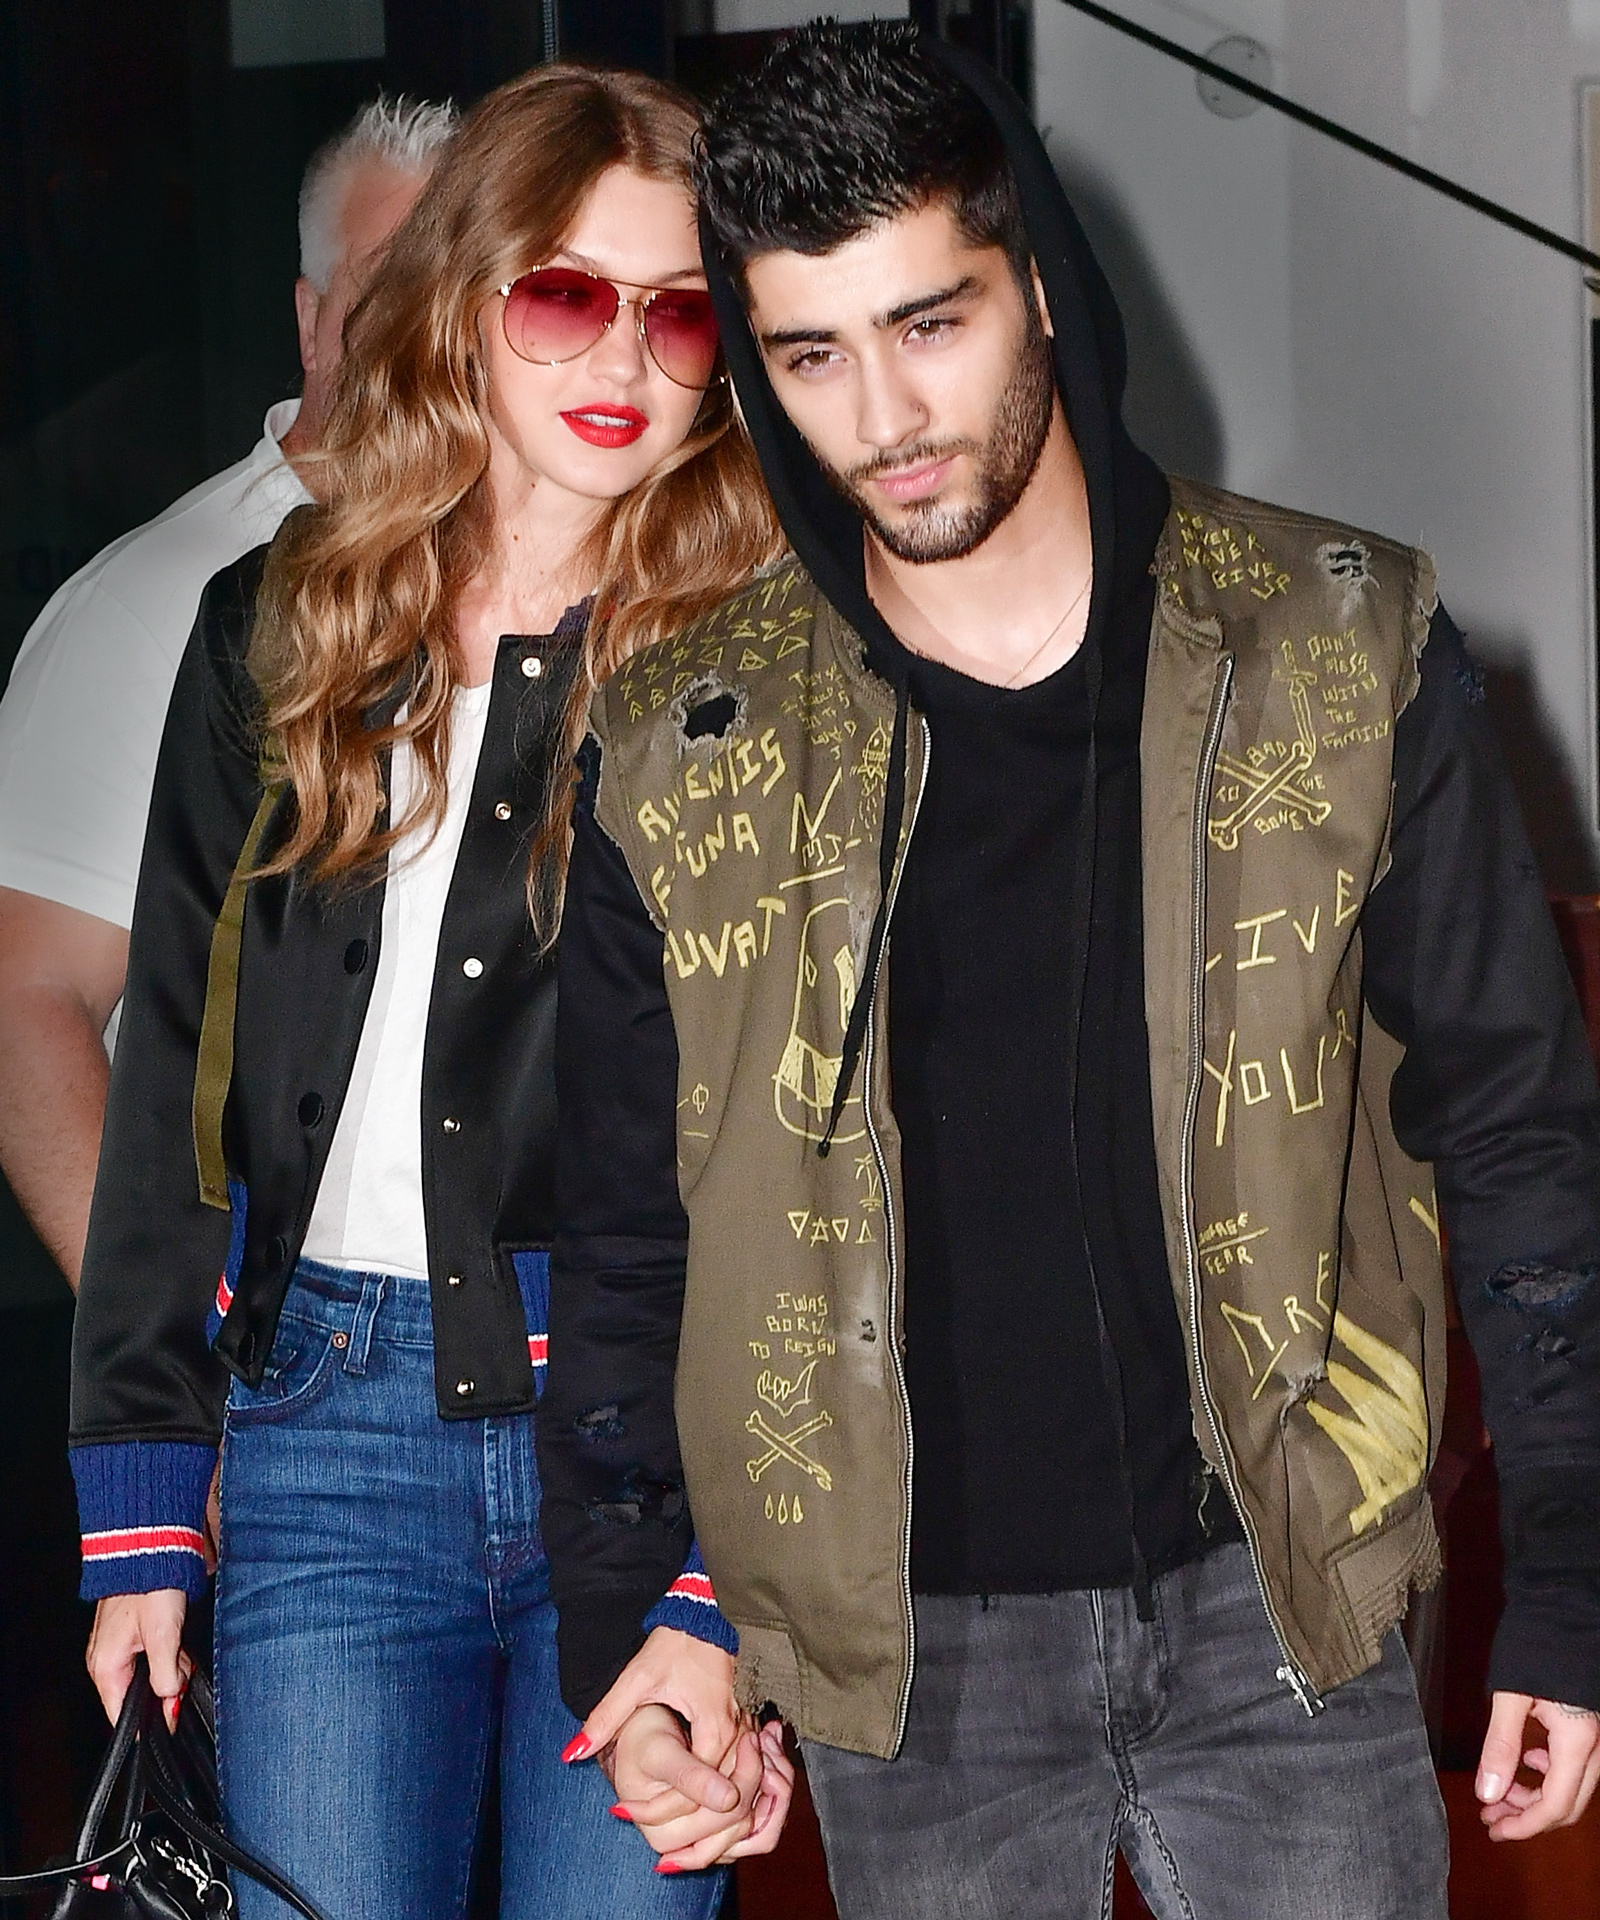 Zayn Malik Cooks for Gigi Hadid in Her Latest Romantic Snapchat